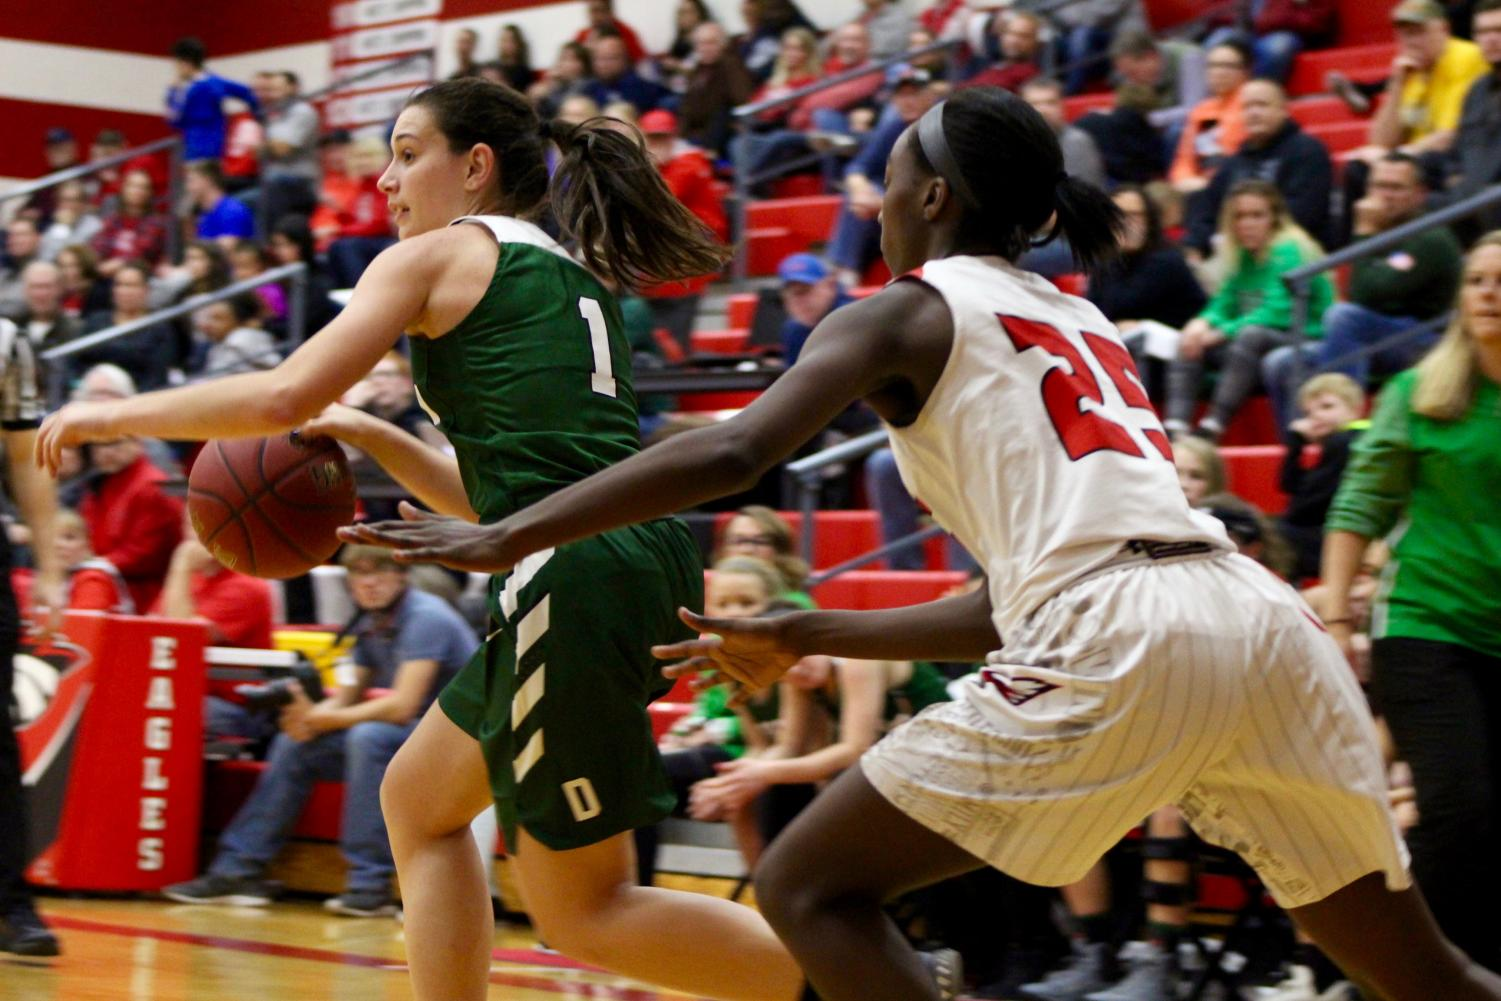 Sophomore+Sydney+Nilles+dribbles+the+ball+away+from+Maize%27s+offense.